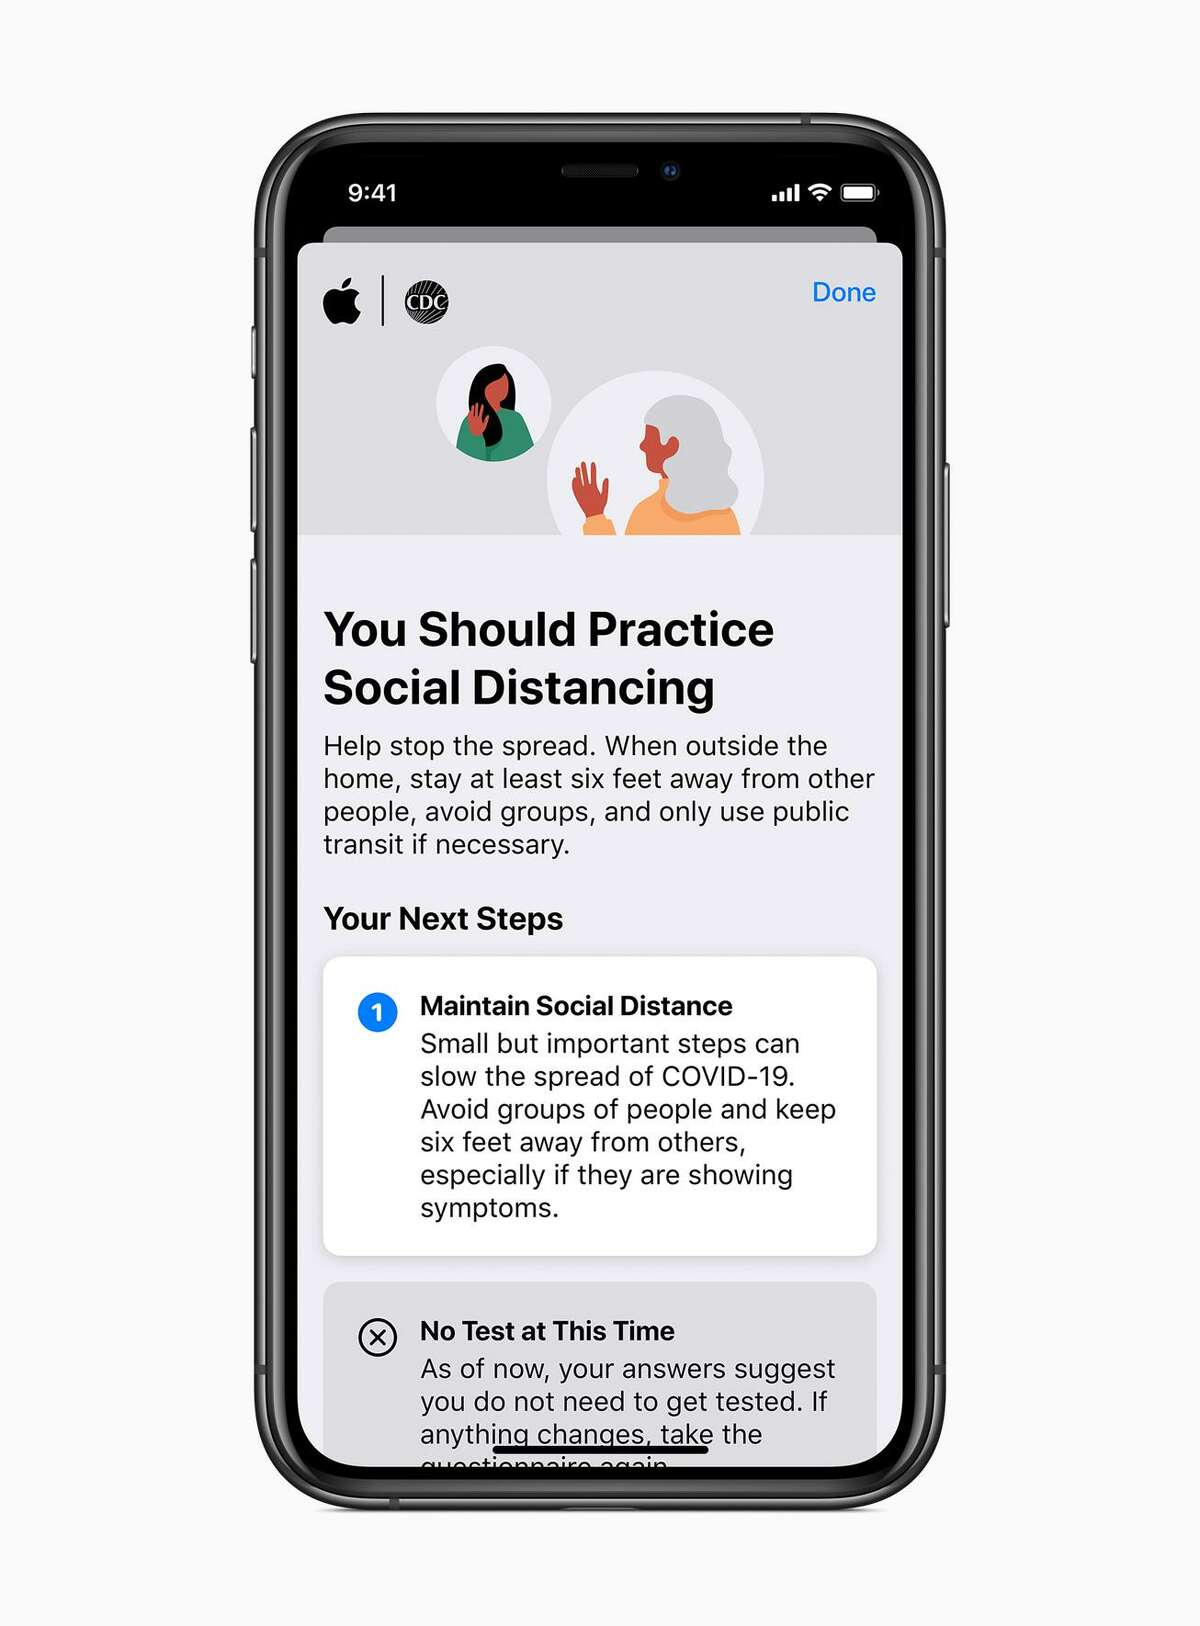 Apple has launched a free app and website that provides information about COVID-19, as well as providing basic screening for the disease.